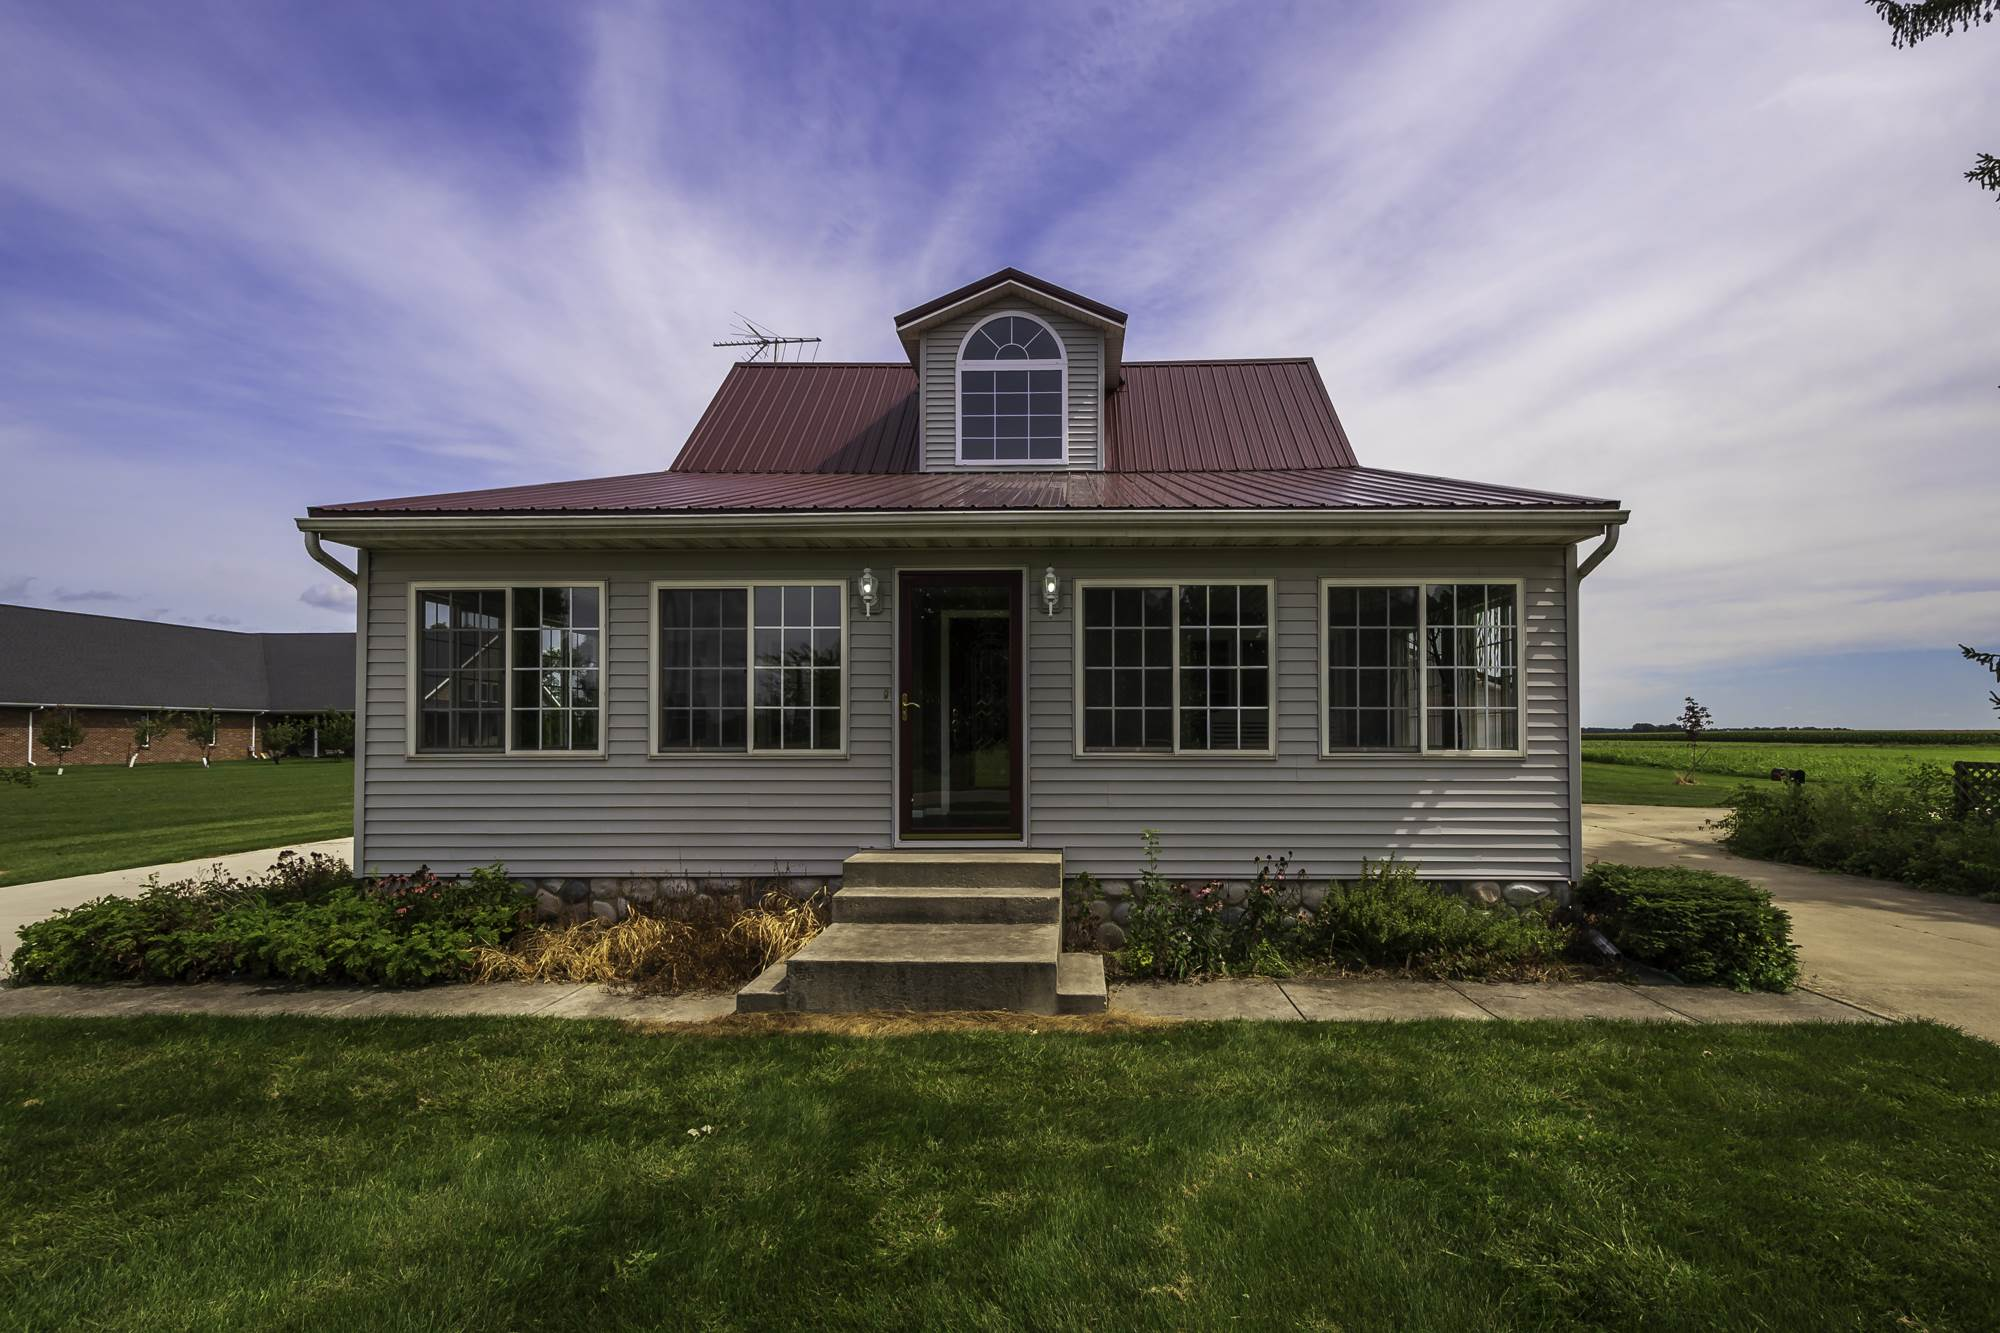 5757 N 600 E, Craigville, IN 46731